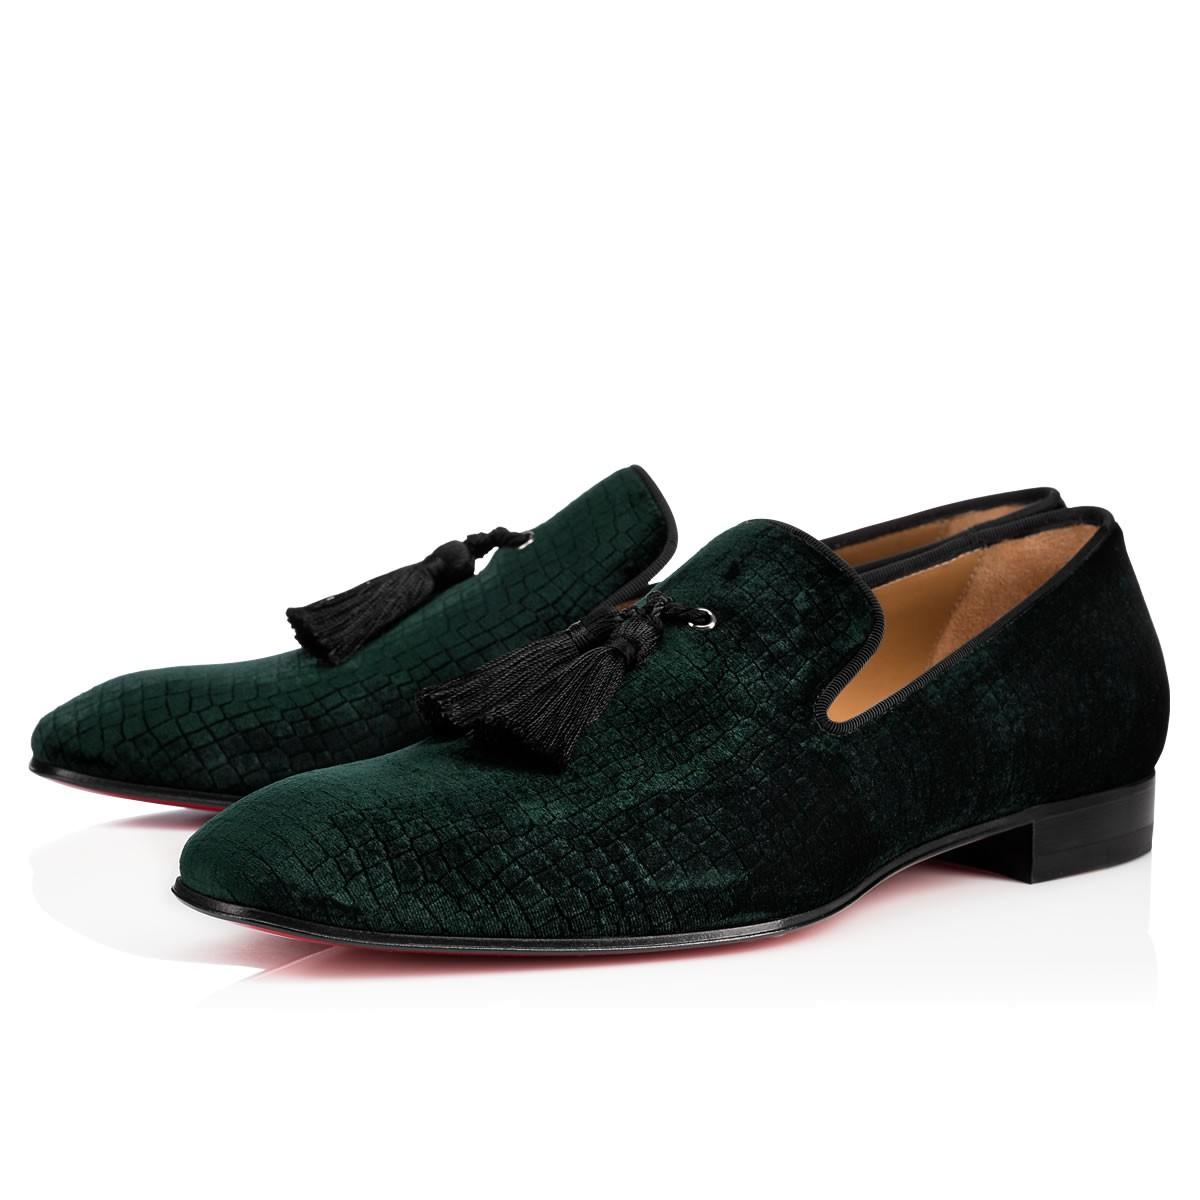 4788dba91dc0 Christian Louboutin Stampato Reptile-Effect Velvet Loafers In Verde. CHRISTIAN  LOUBOUTIN